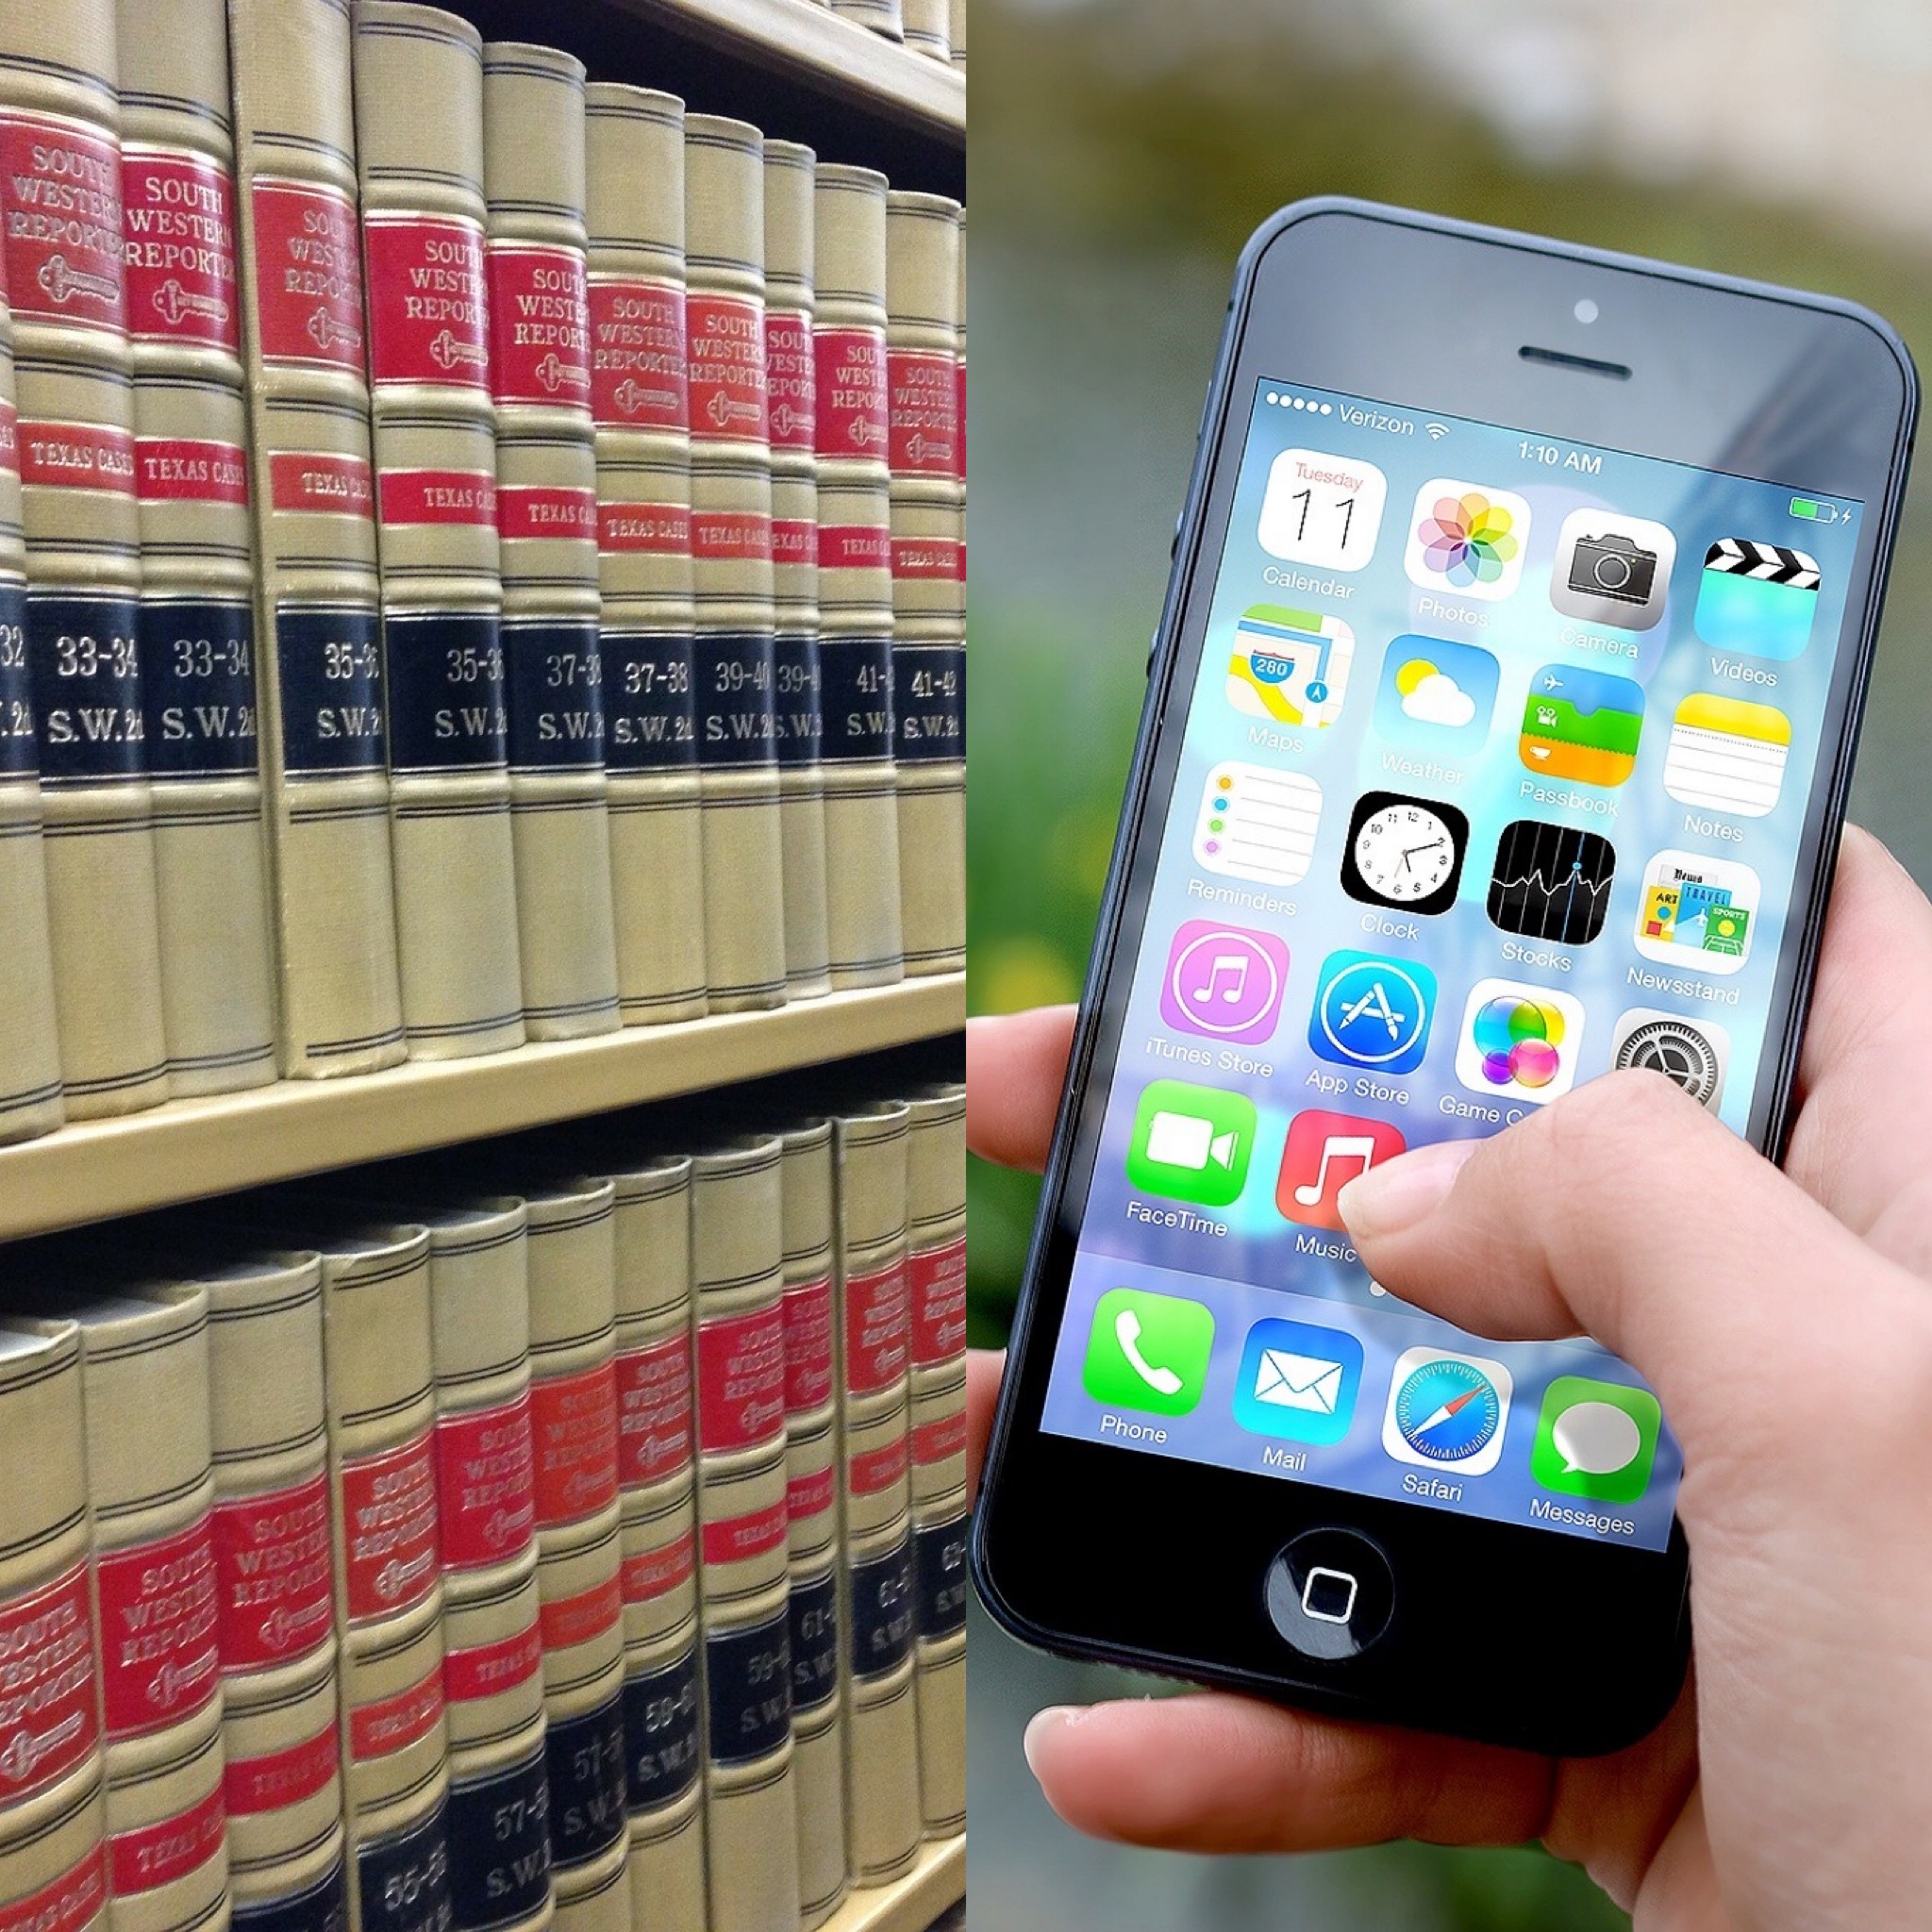 Law books and Internet